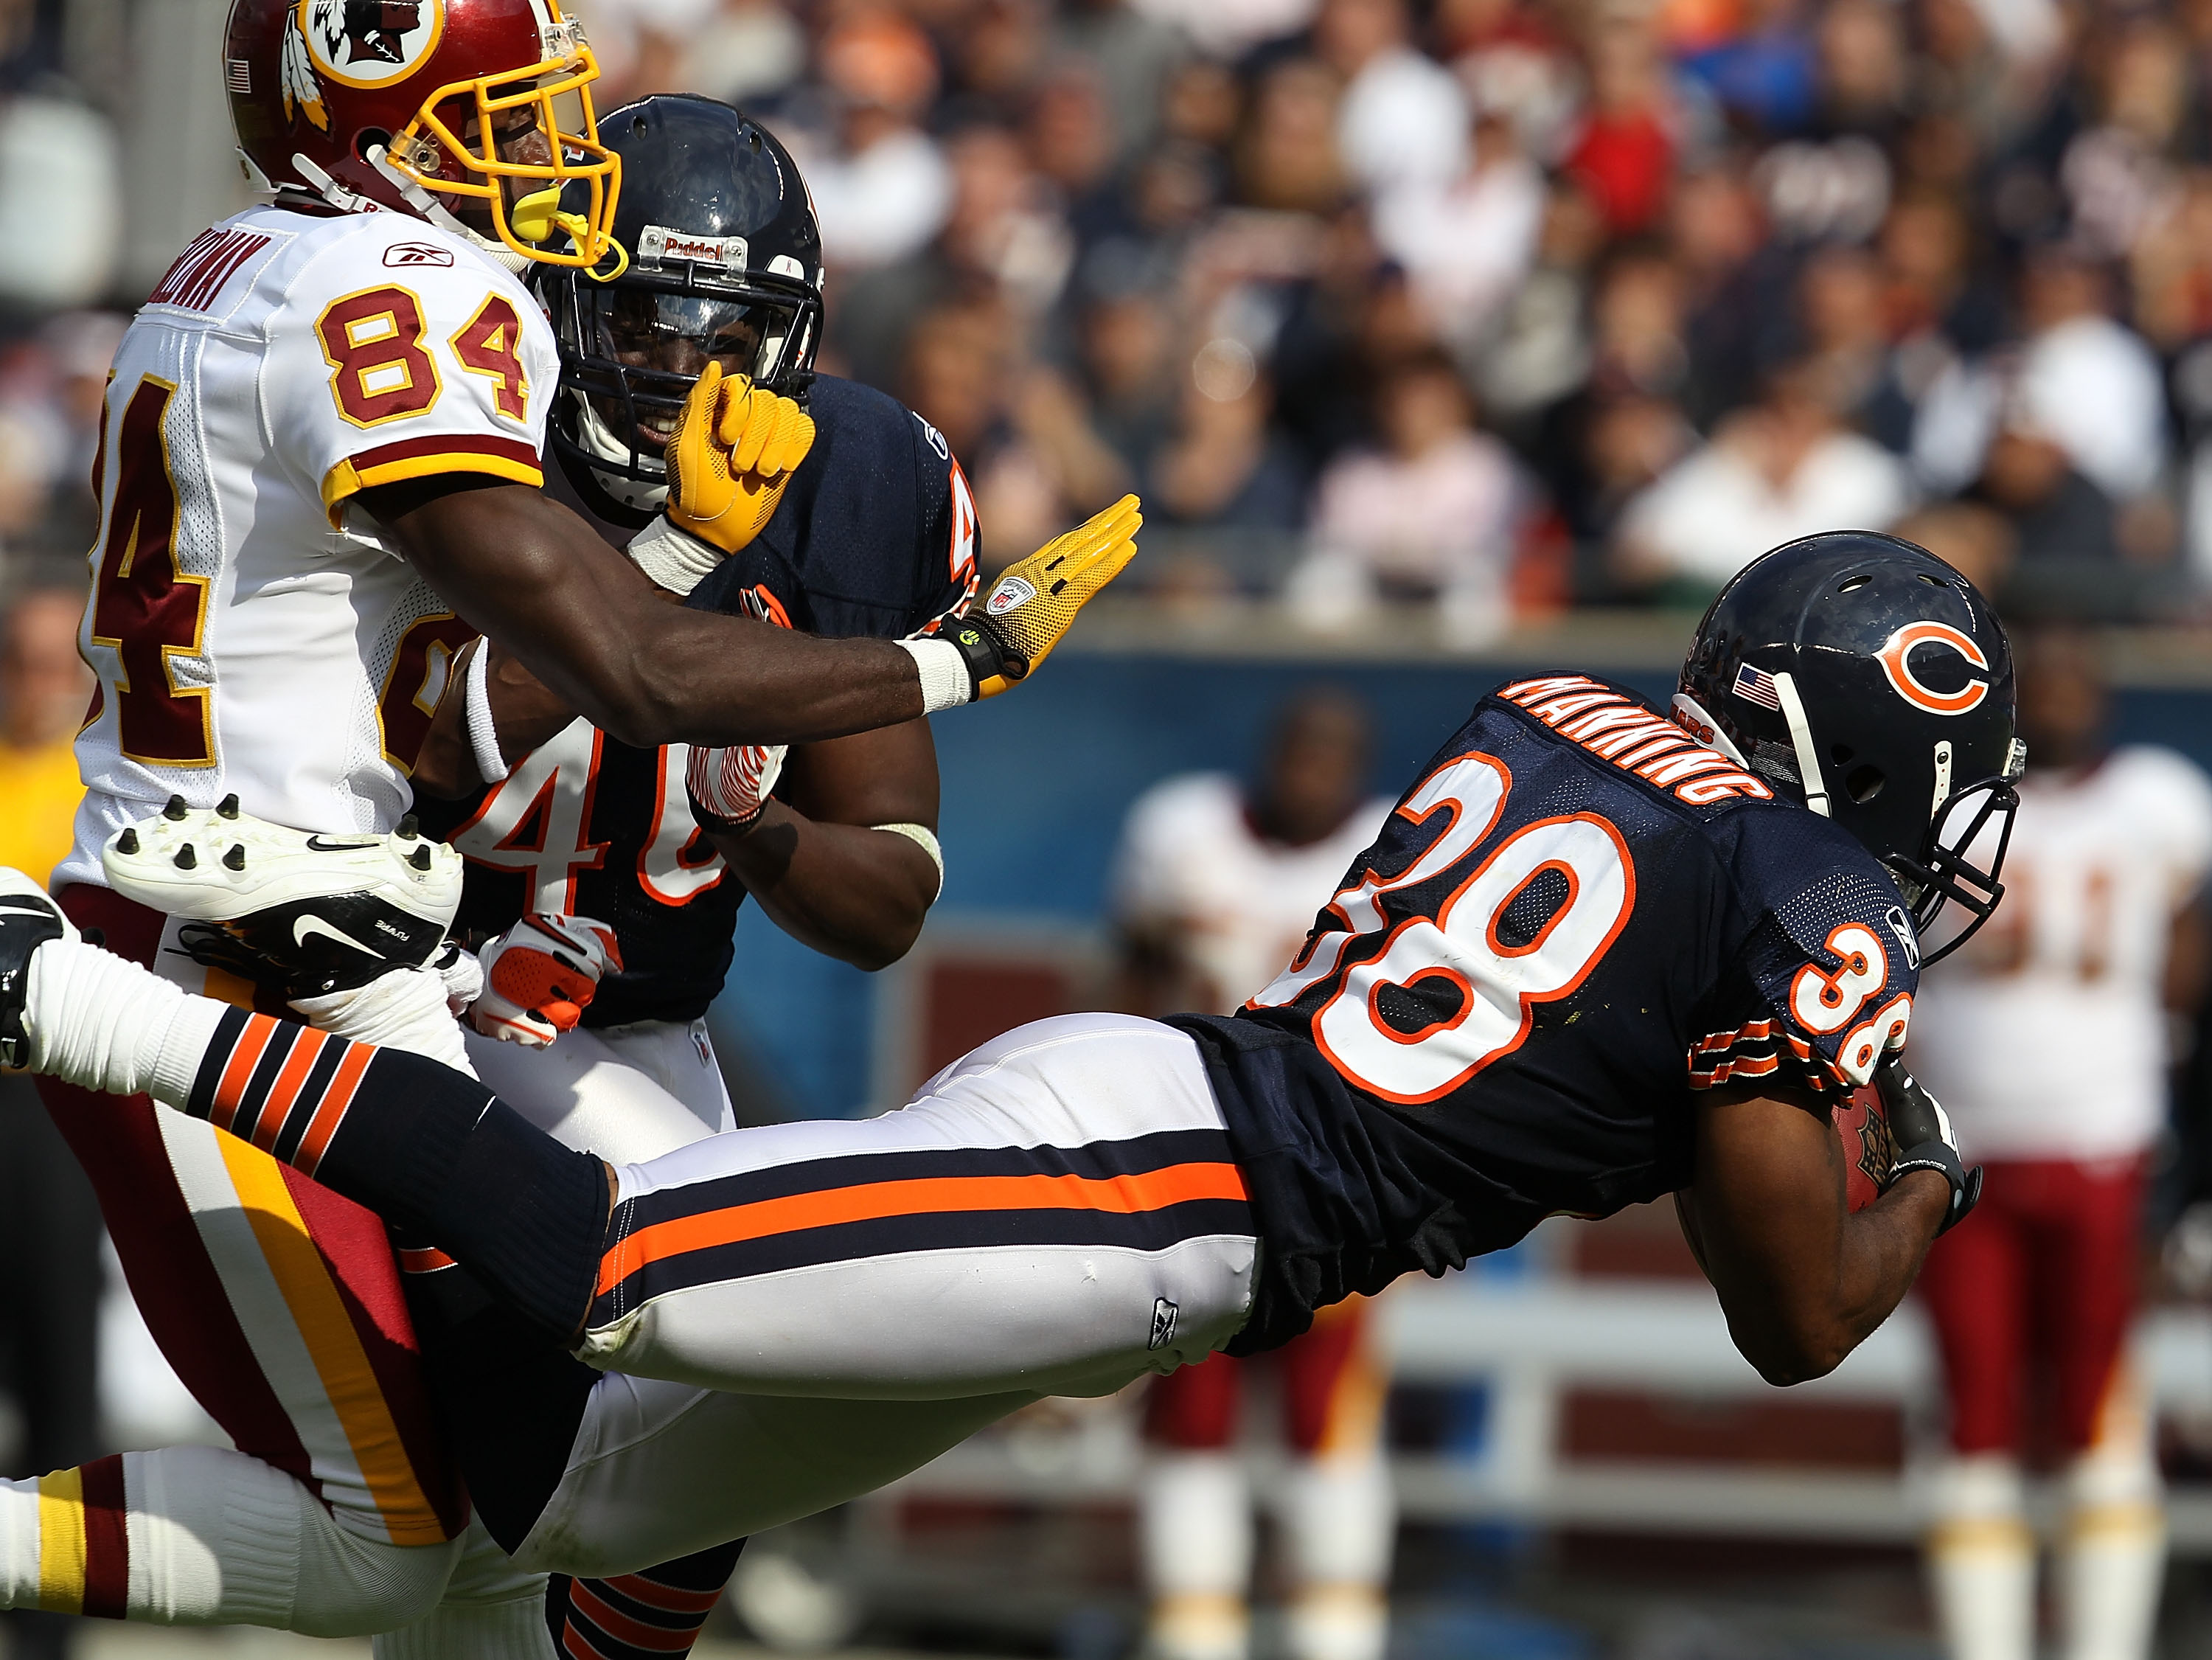 CHICAGO - OCTOBER 24: Danieal Manning #38 of the Chicago Bears intercepts a pass intended for Joey Galloway #84 of the Washington Redskins at Soldier Field on October 24, 2010 in Chicago, Illinois. The Redskins defeated the Bears 17-14. (Photo by Jonathan